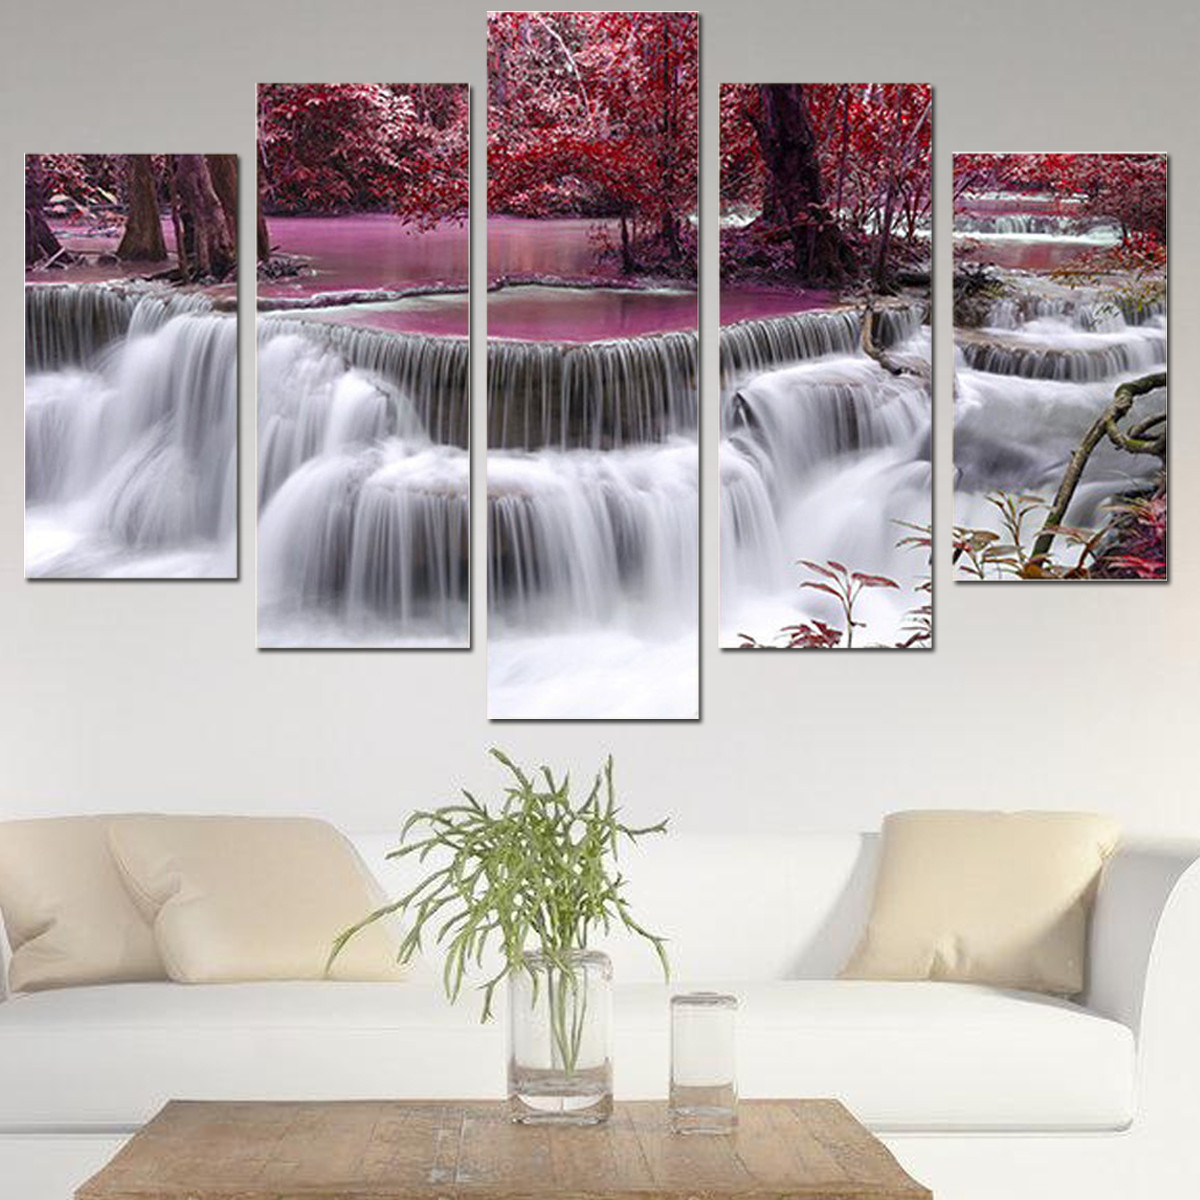 5 Panels Unframed Modern Canvas Art Oil Painting Picture Room Wall Hanging Decor